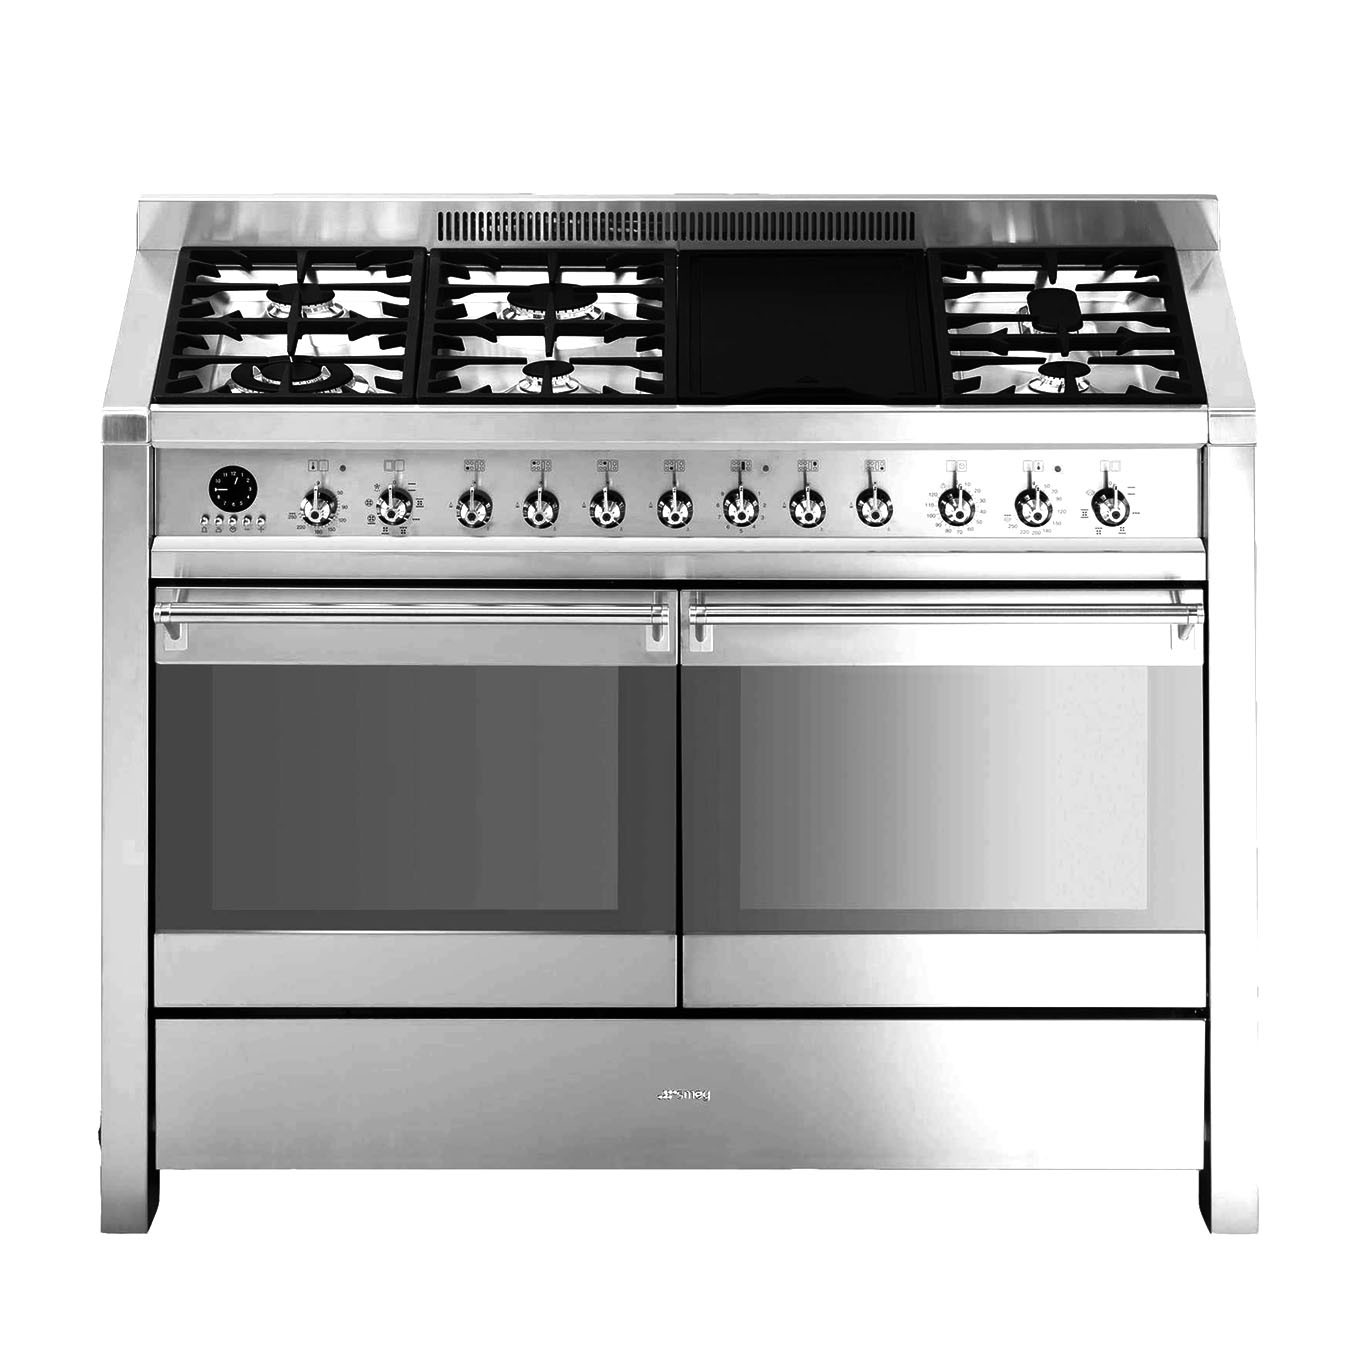 Smeg Opera 120 Dual Fuel Stainless Steel Range Cooker